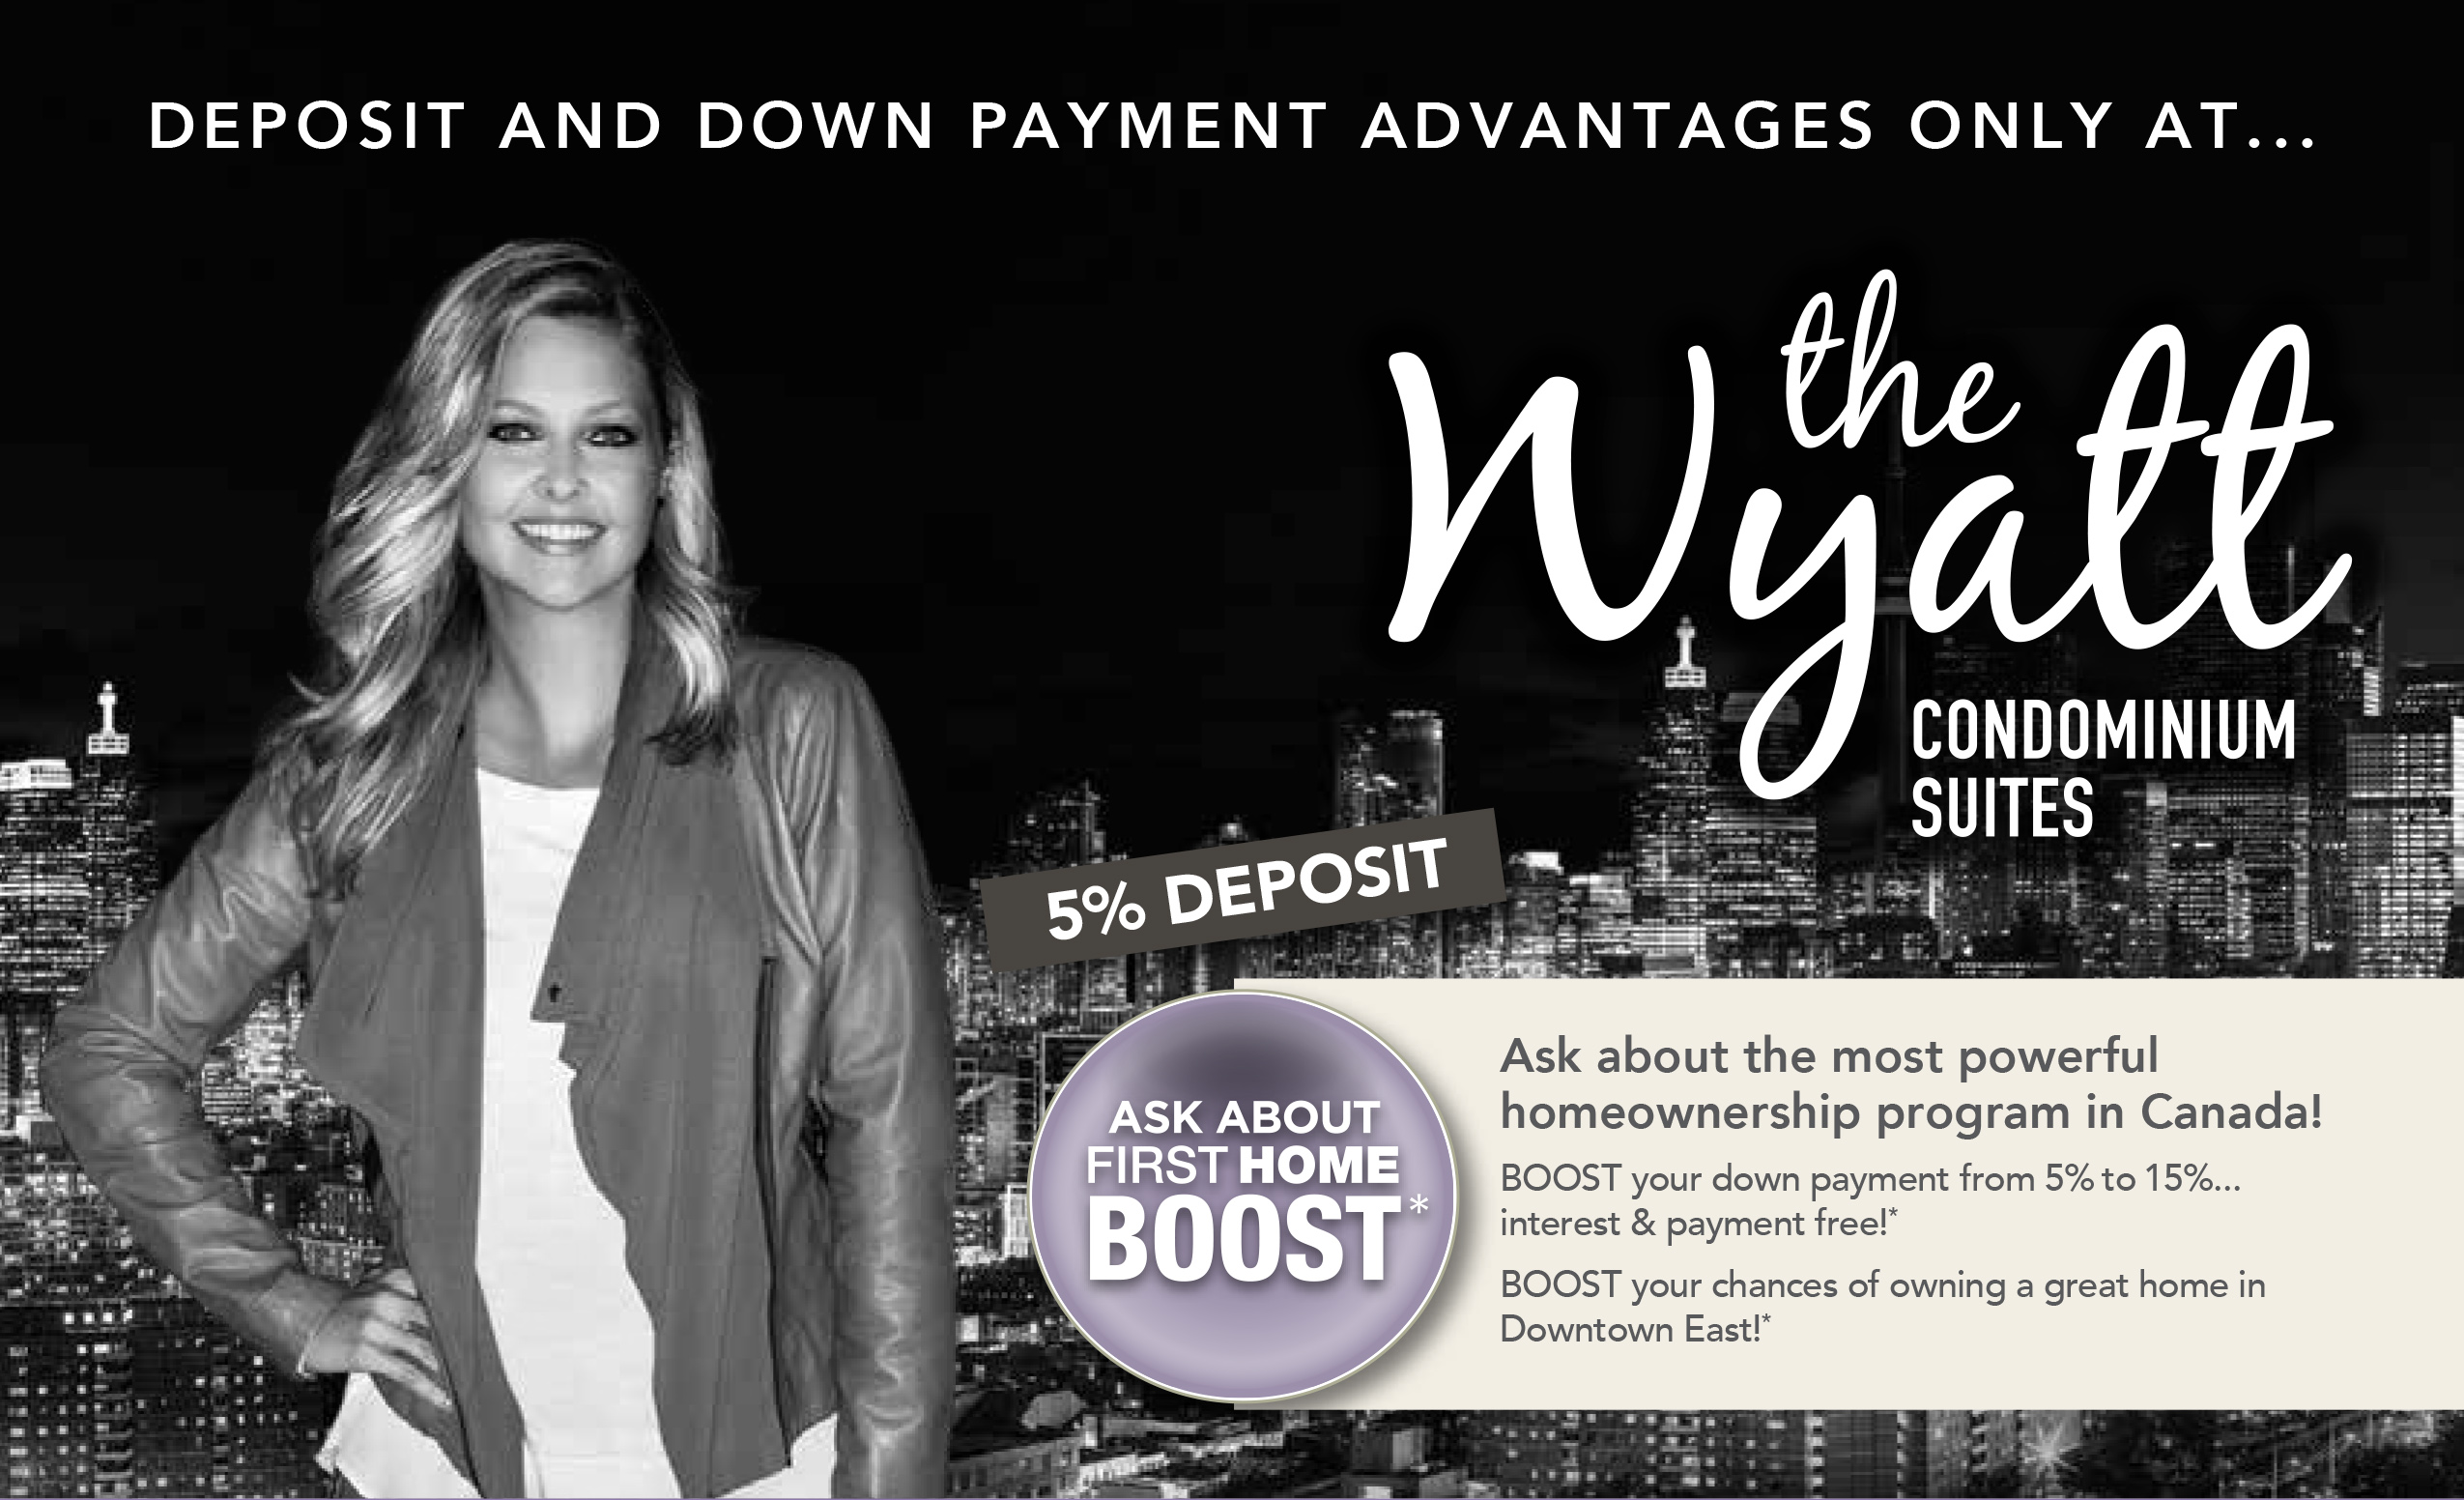 Wyatt condos condominuium in regent park downtown toronto for First time home buyer plan